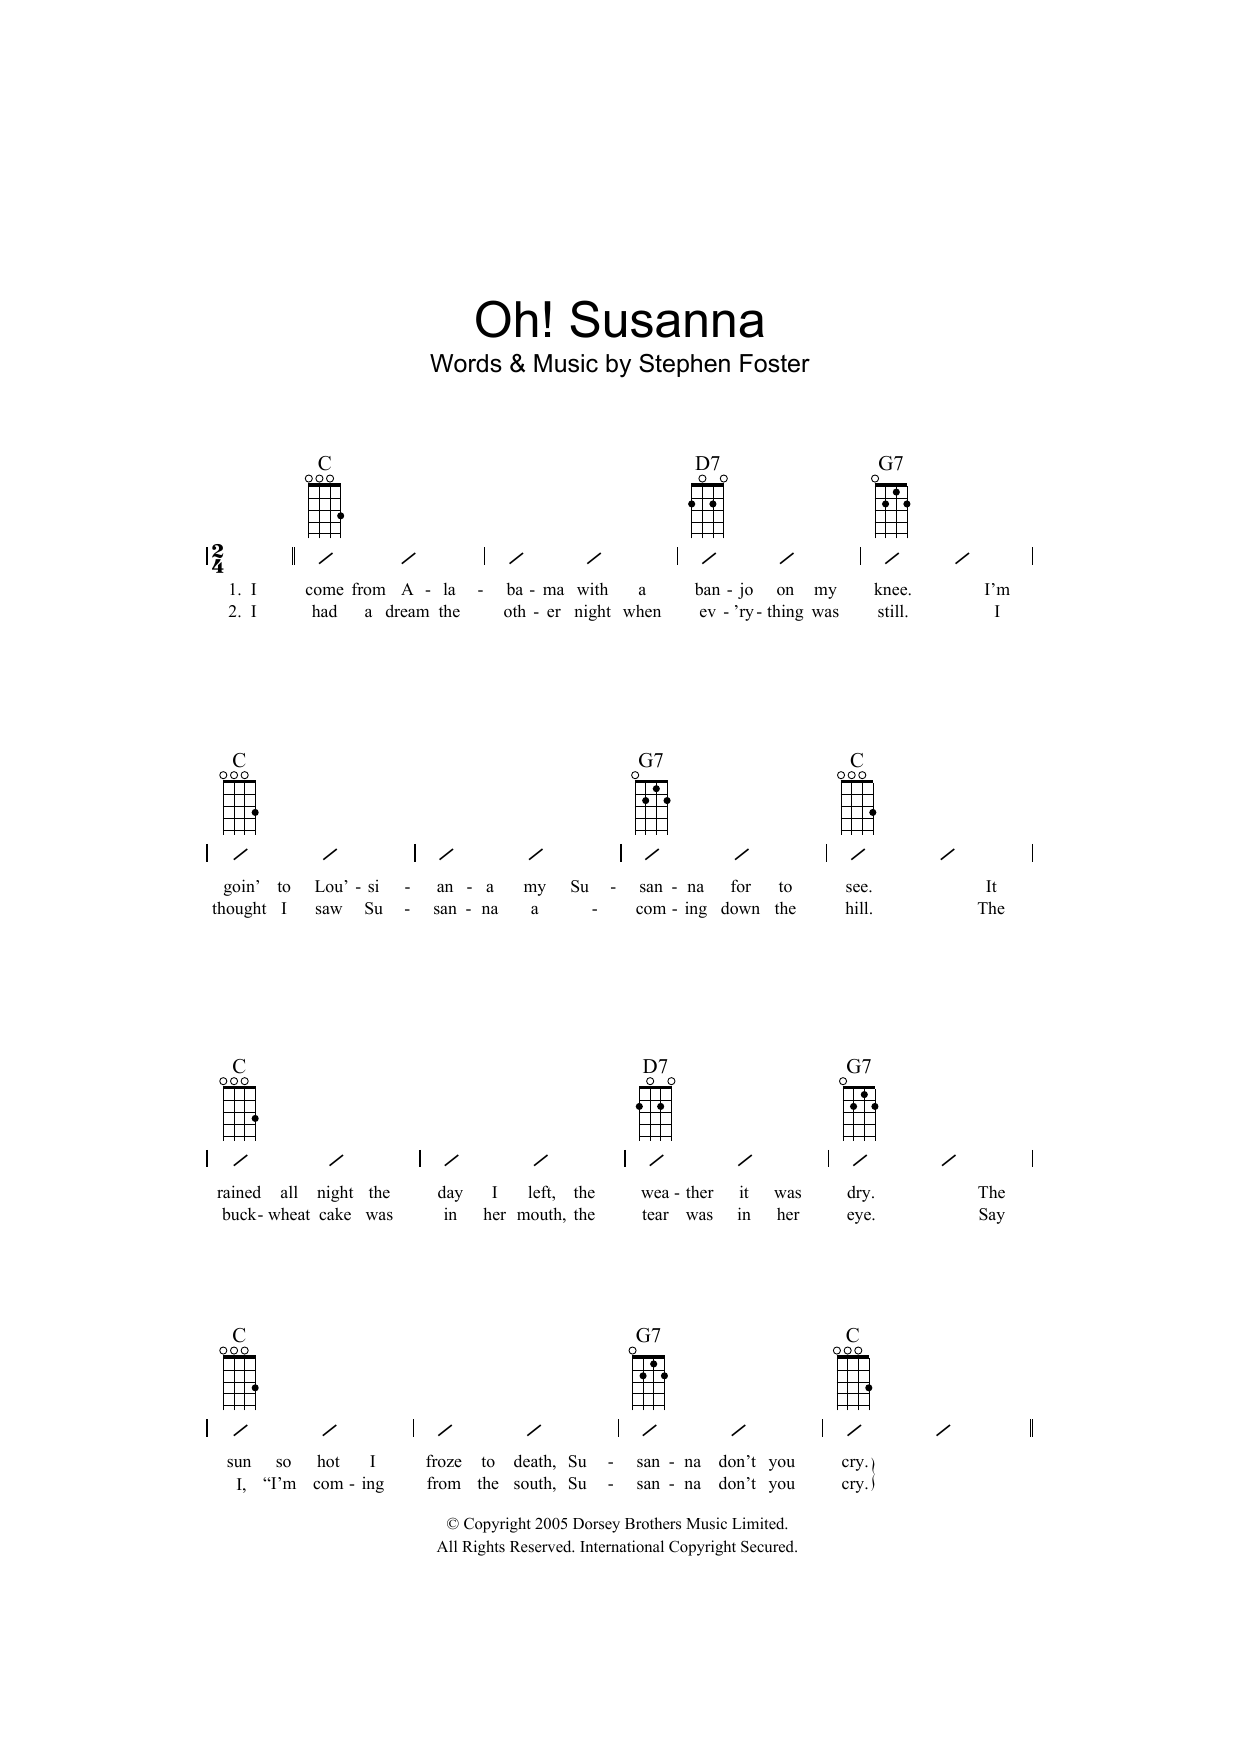 Oh! Susanna Sheet Music